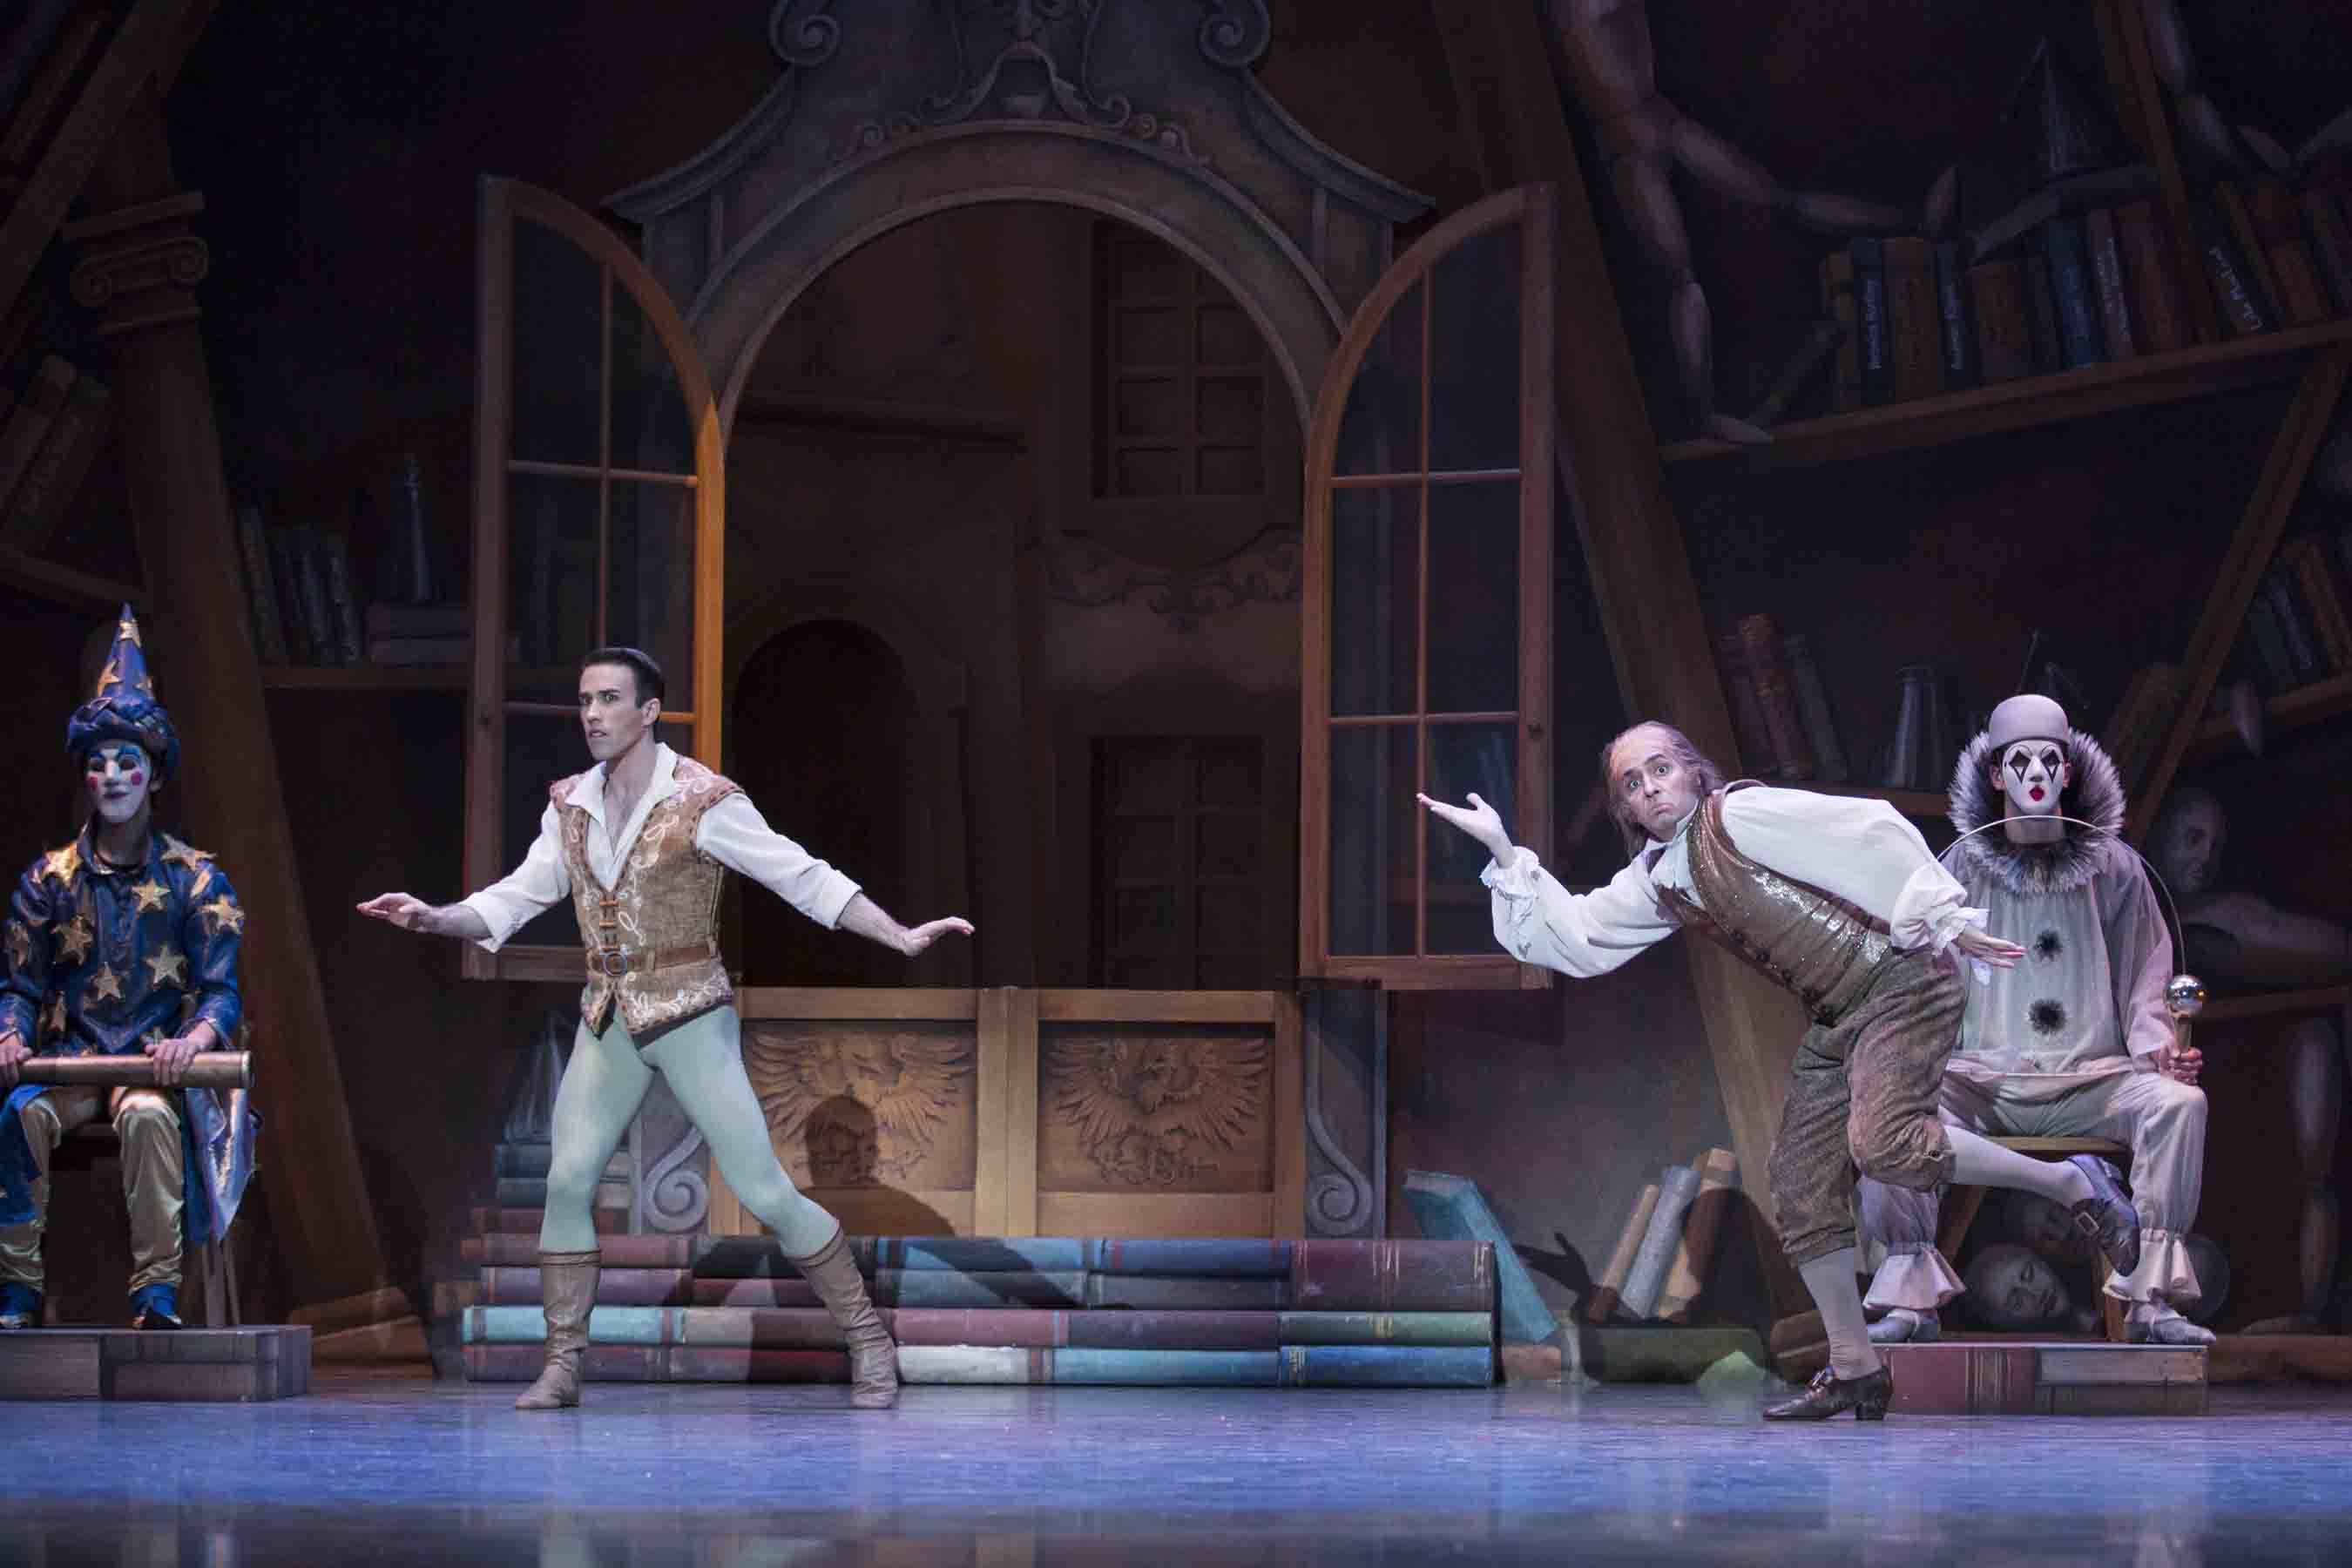 Benjamin Griffiths as Franz and Ryan Cardea as Dr. Coppelius. Photo © Angela Sterling